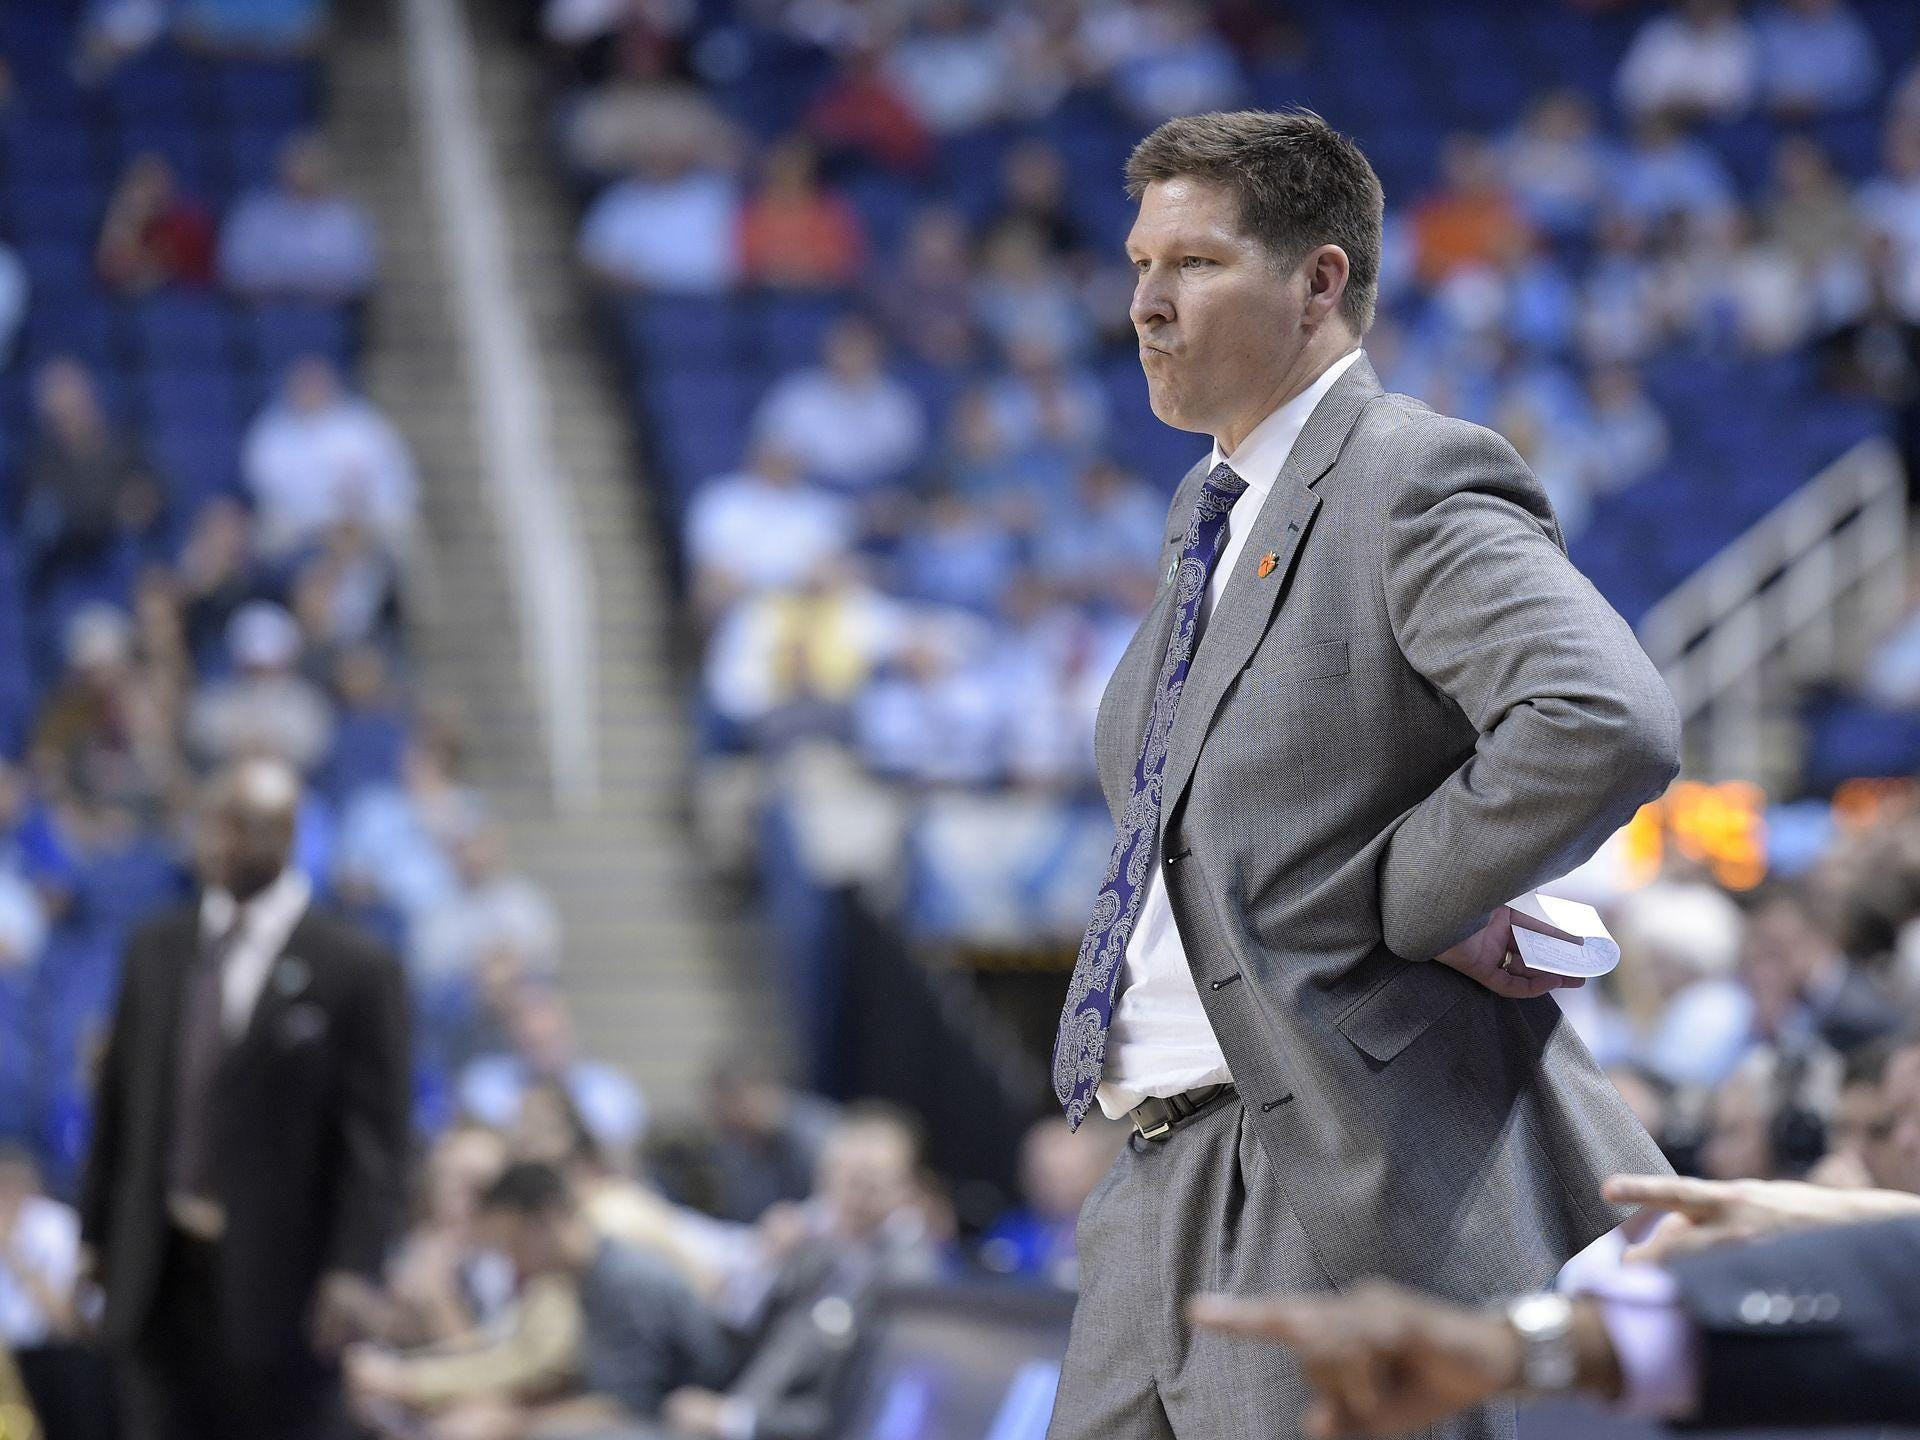 Coach Brad Brownell's team will open the season against 25-game winner N.C. Central on Nov. 13.